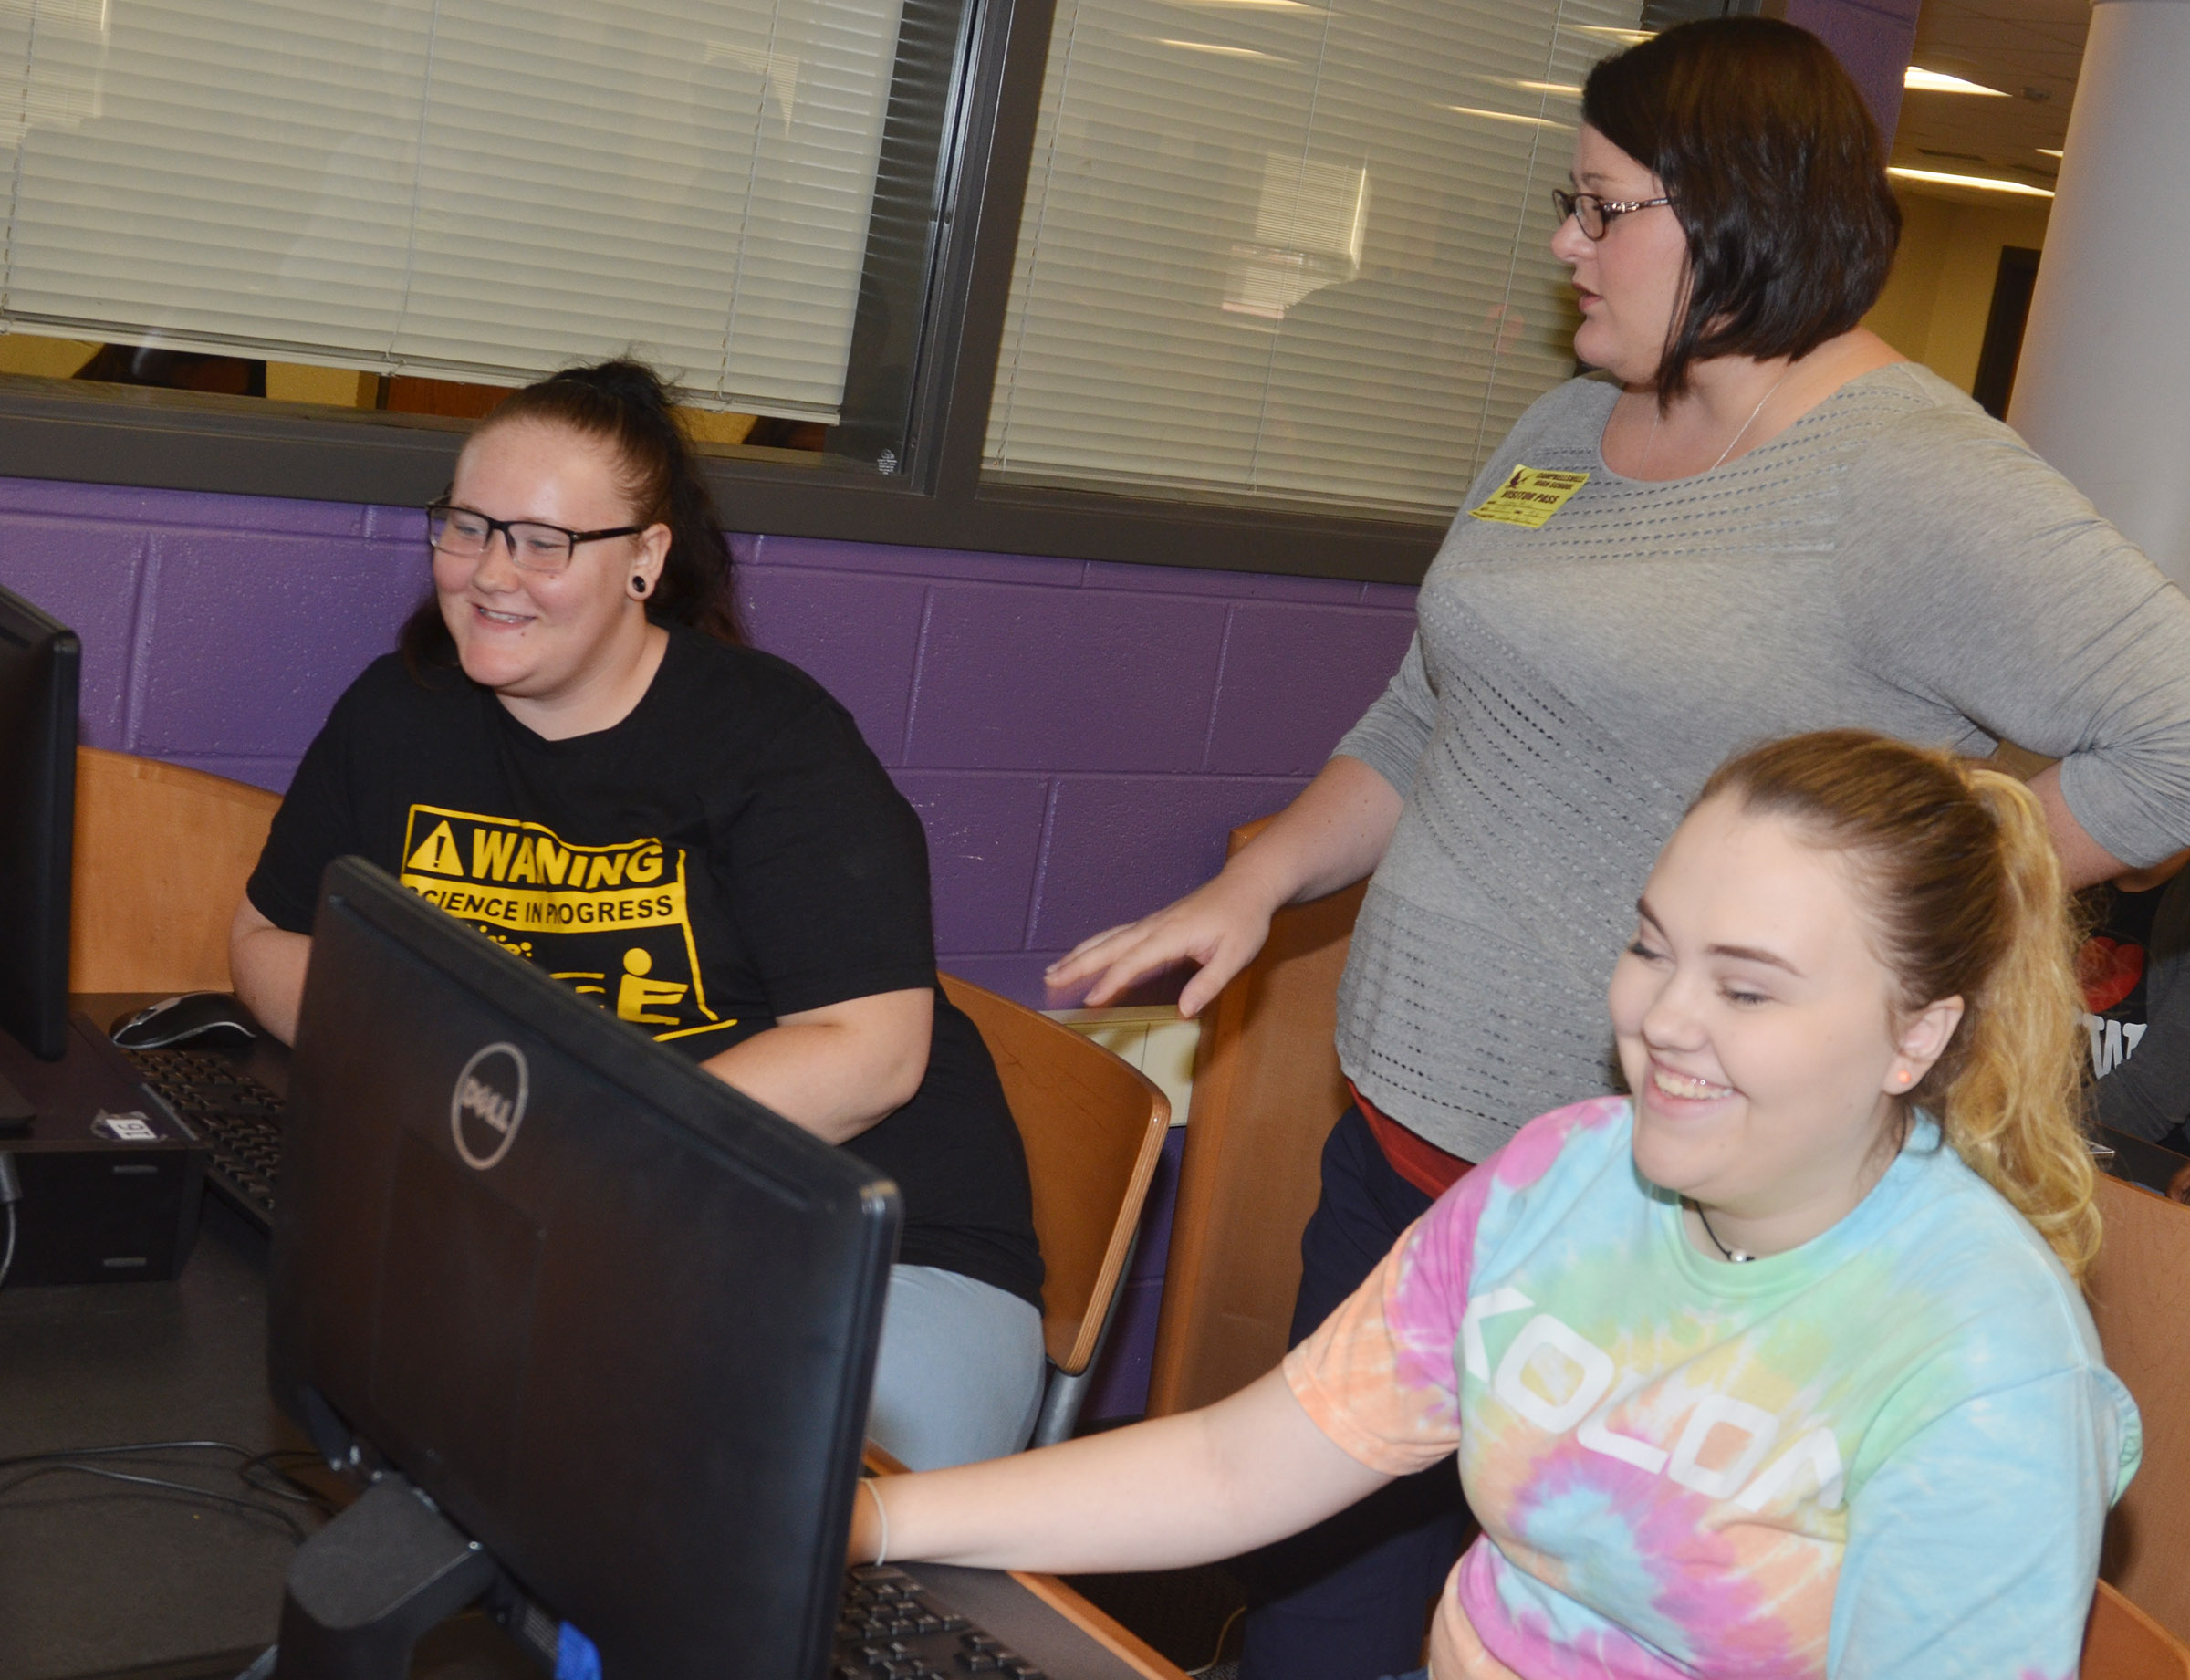 KHEAA representative Audrey Price helps CHS seniors Jay Cox, at left, and Haley Fitch as they submit their college applications.